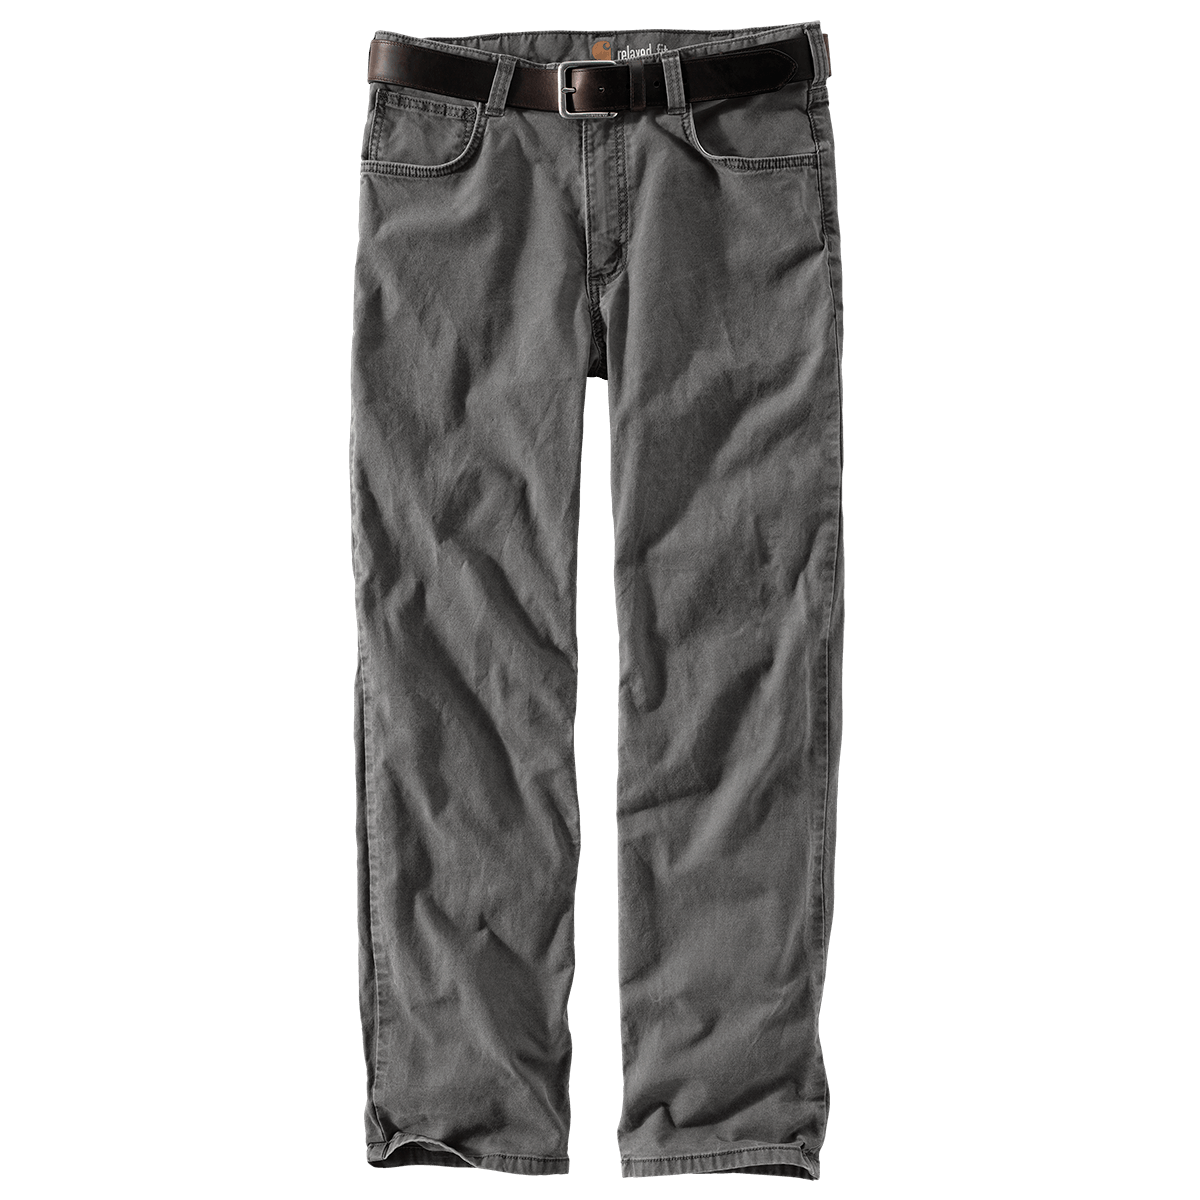 ruggedflex_ribgy_five-pocket_jean_102517